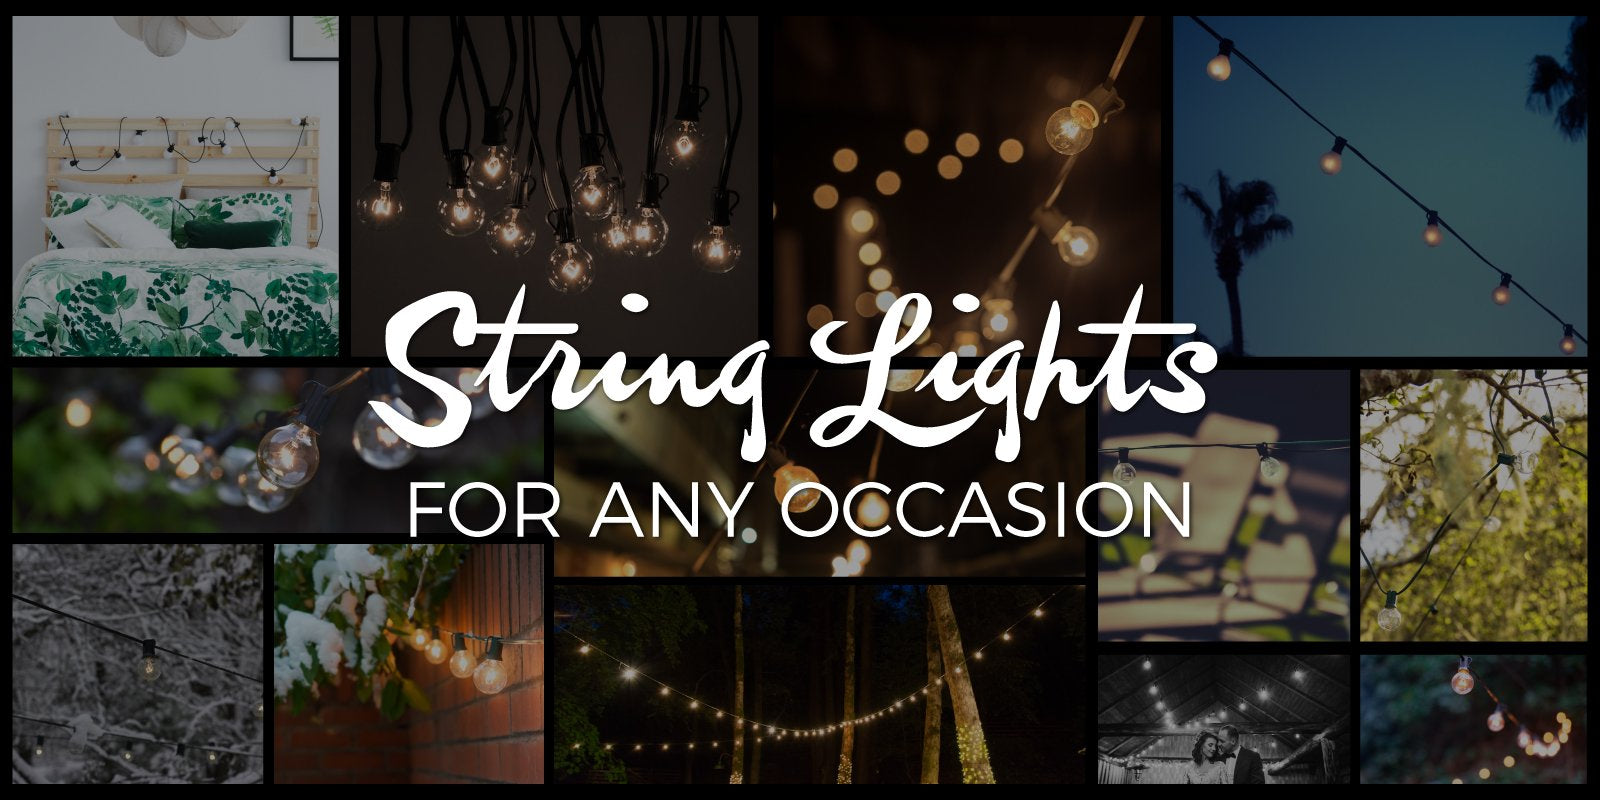 Outdoor lighting store